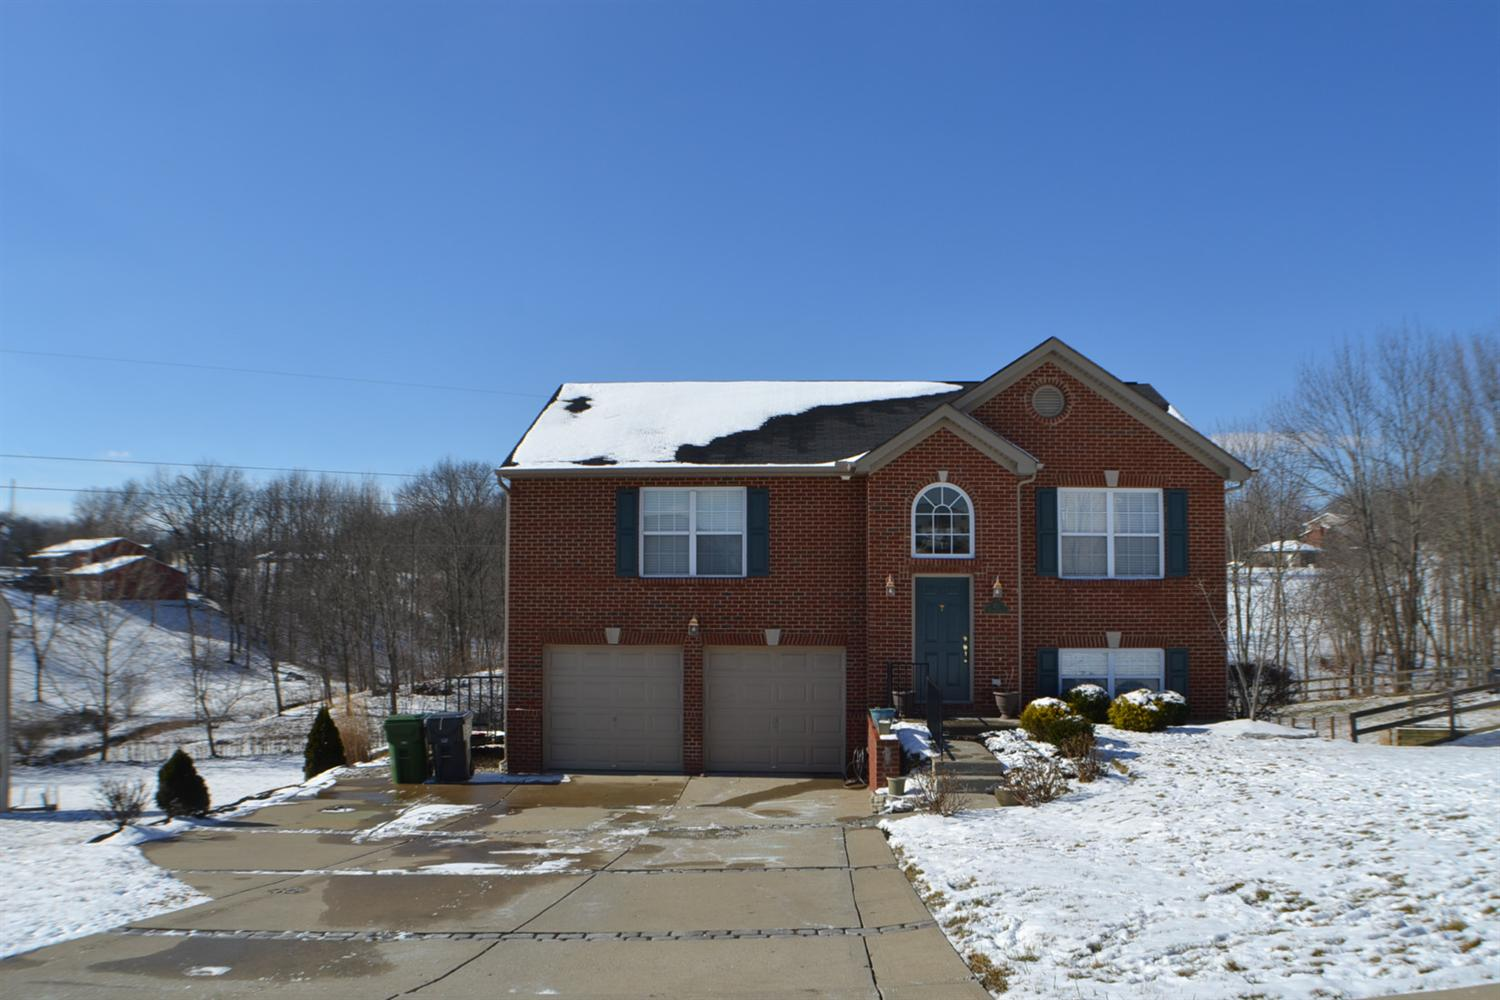 Photo 1 for 471 Rosebud Cir Walton, KY 41094